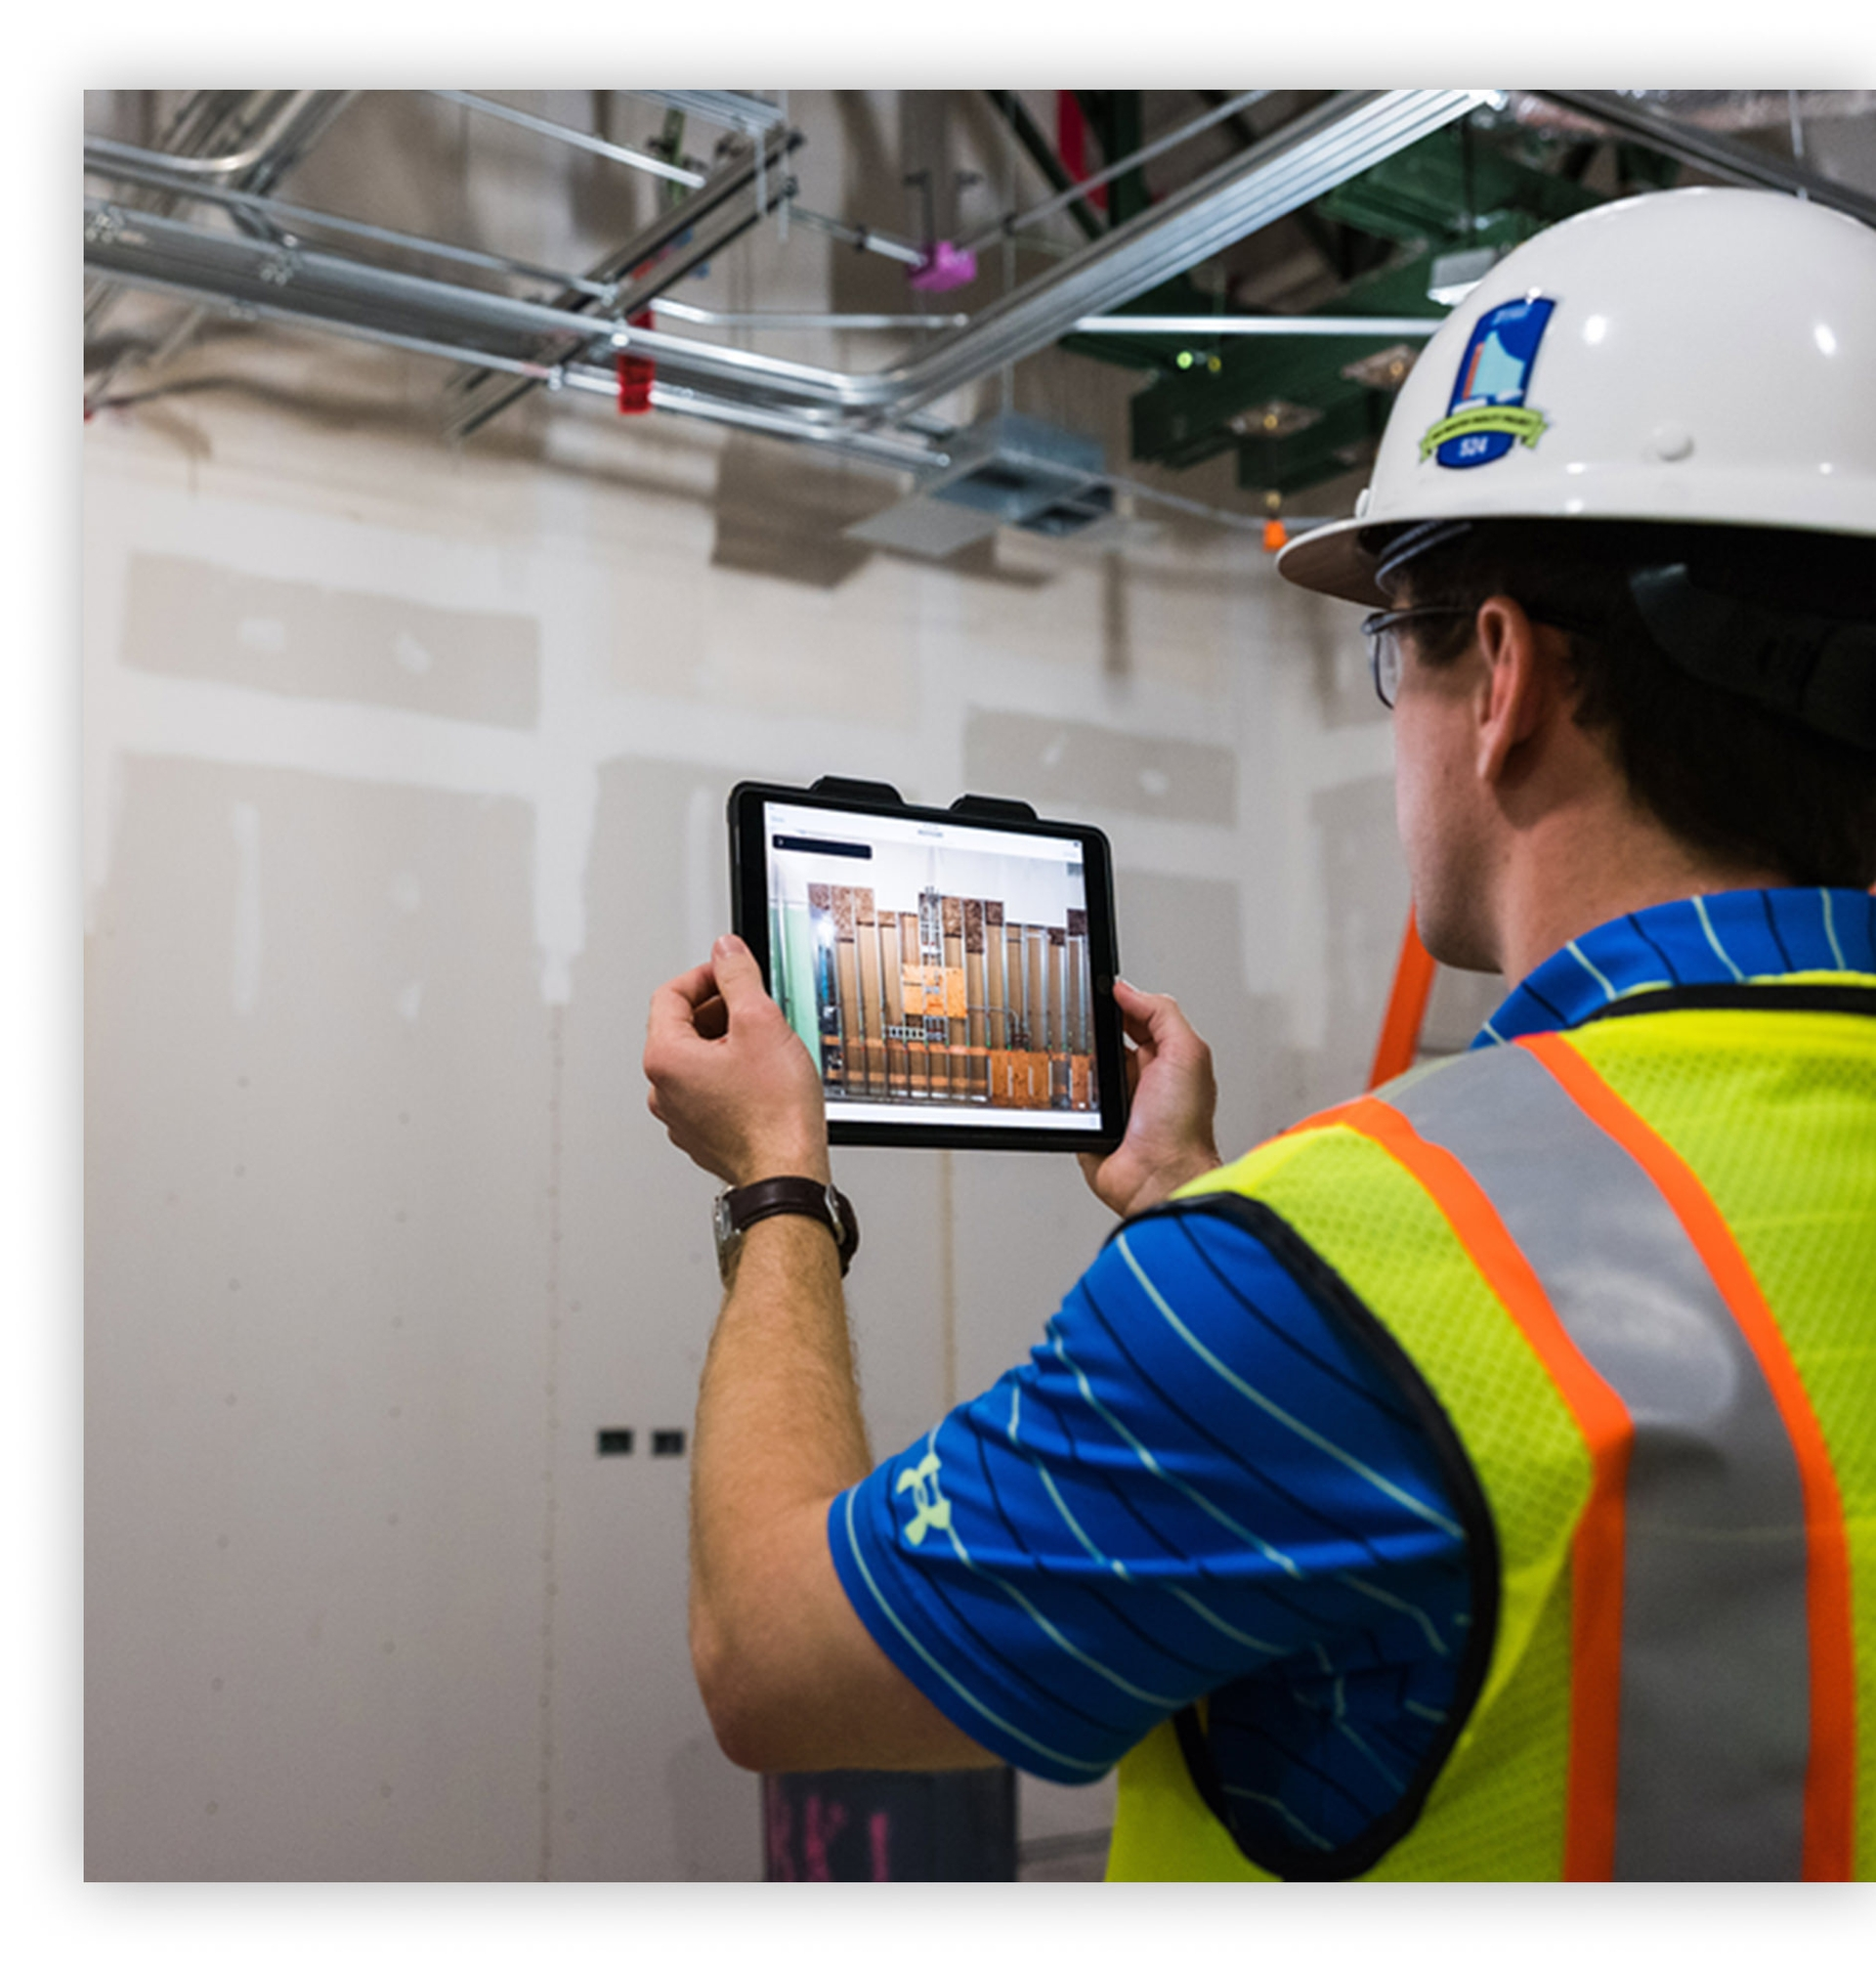 Autodesk used on plasterboards, painting, floors, finishing construction projects